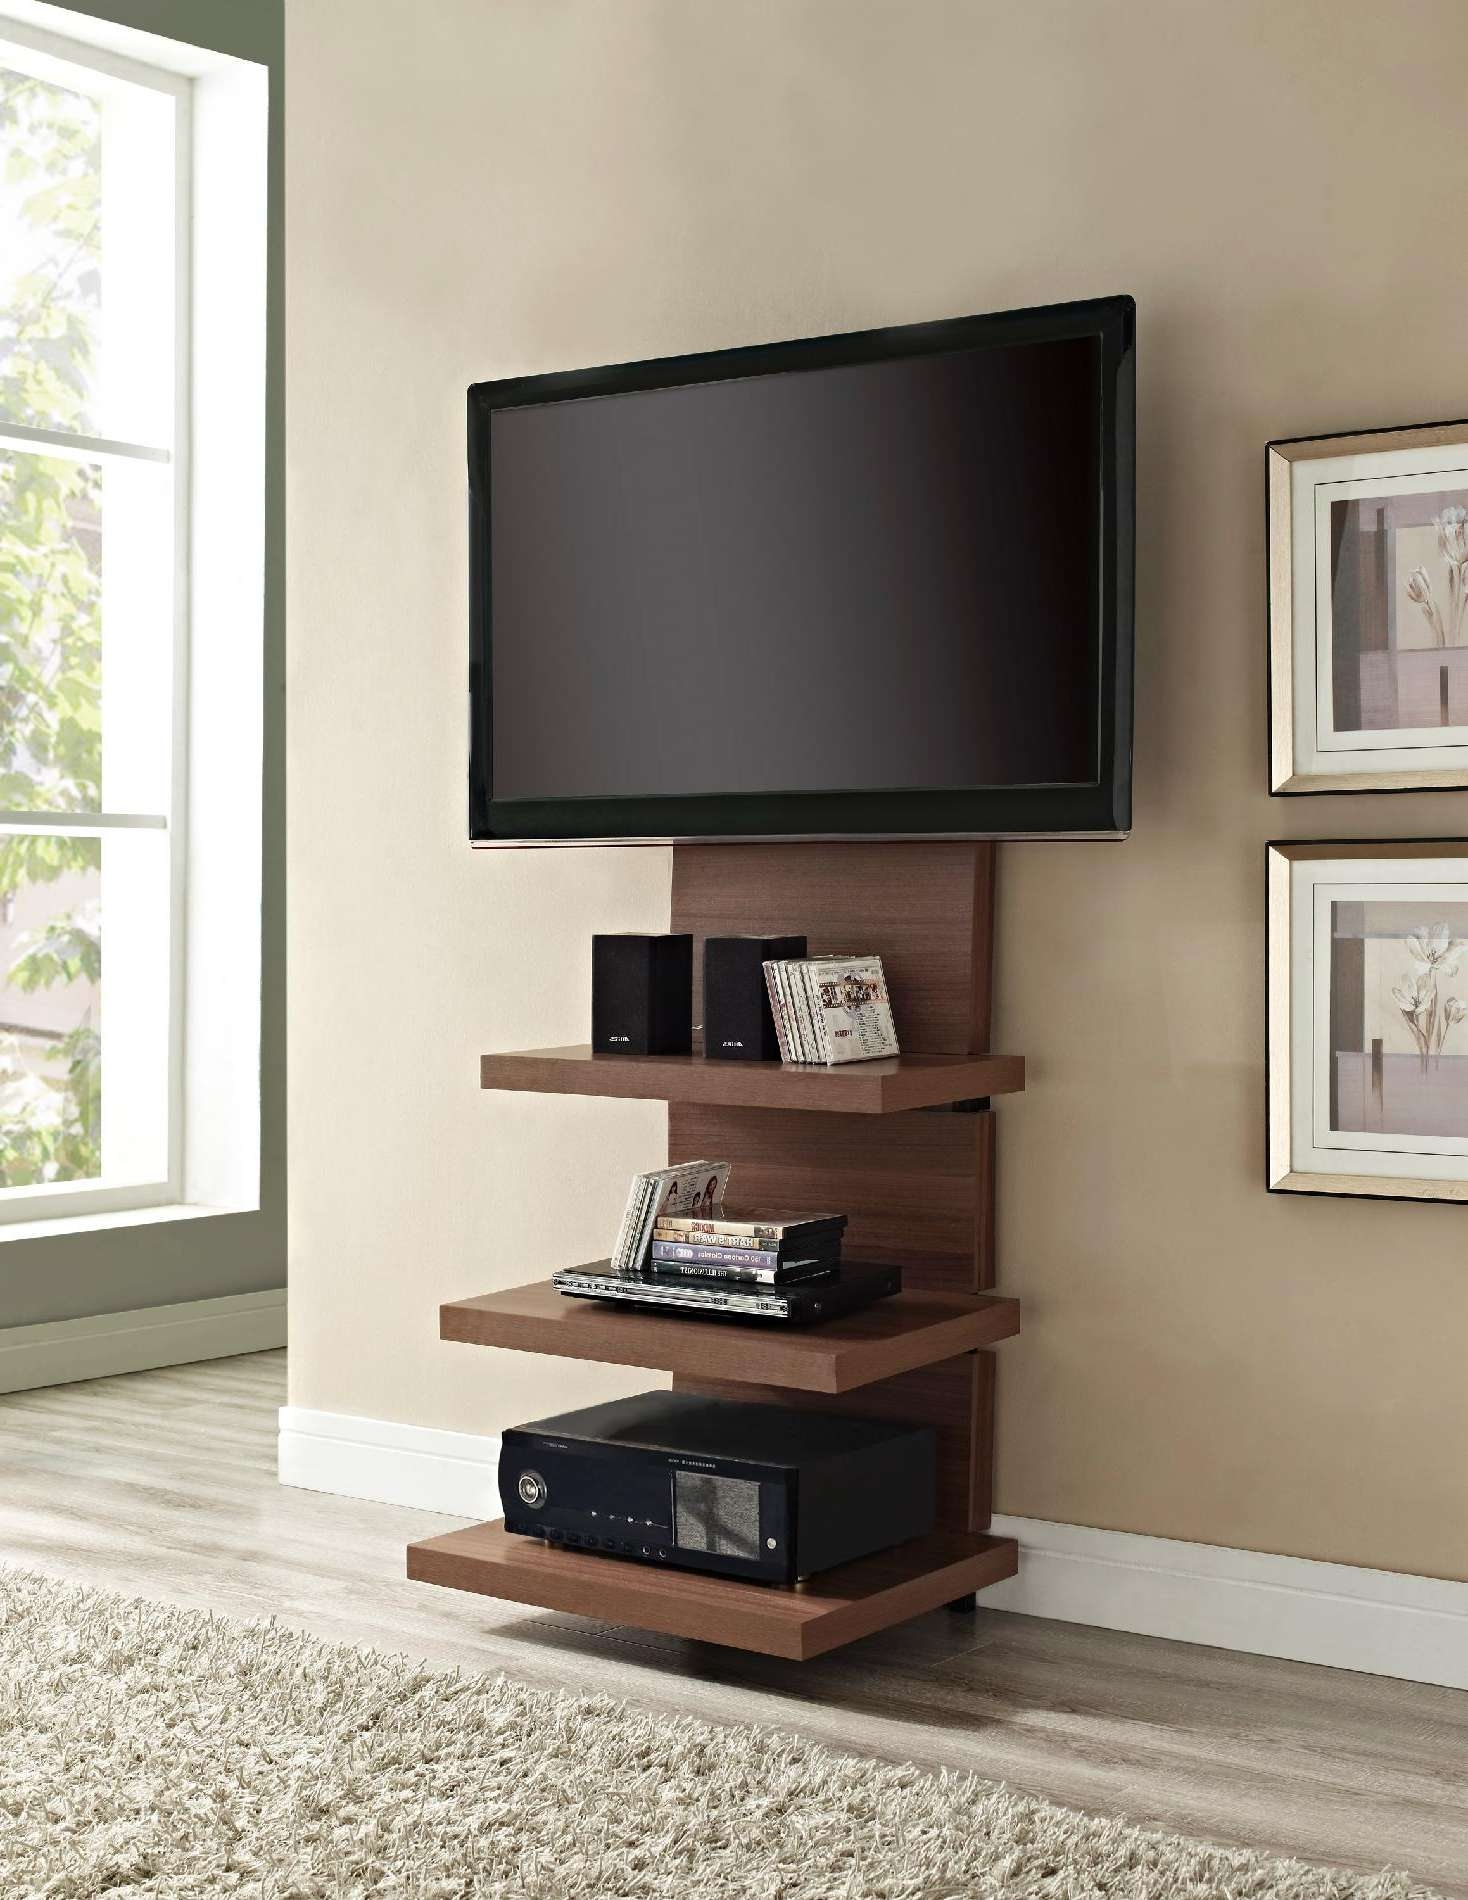 Tv Stand : Surprisingl Skinny Tv Stand Image Inspirations Within Tall Skinny Tv Stands (View 9 of 15)